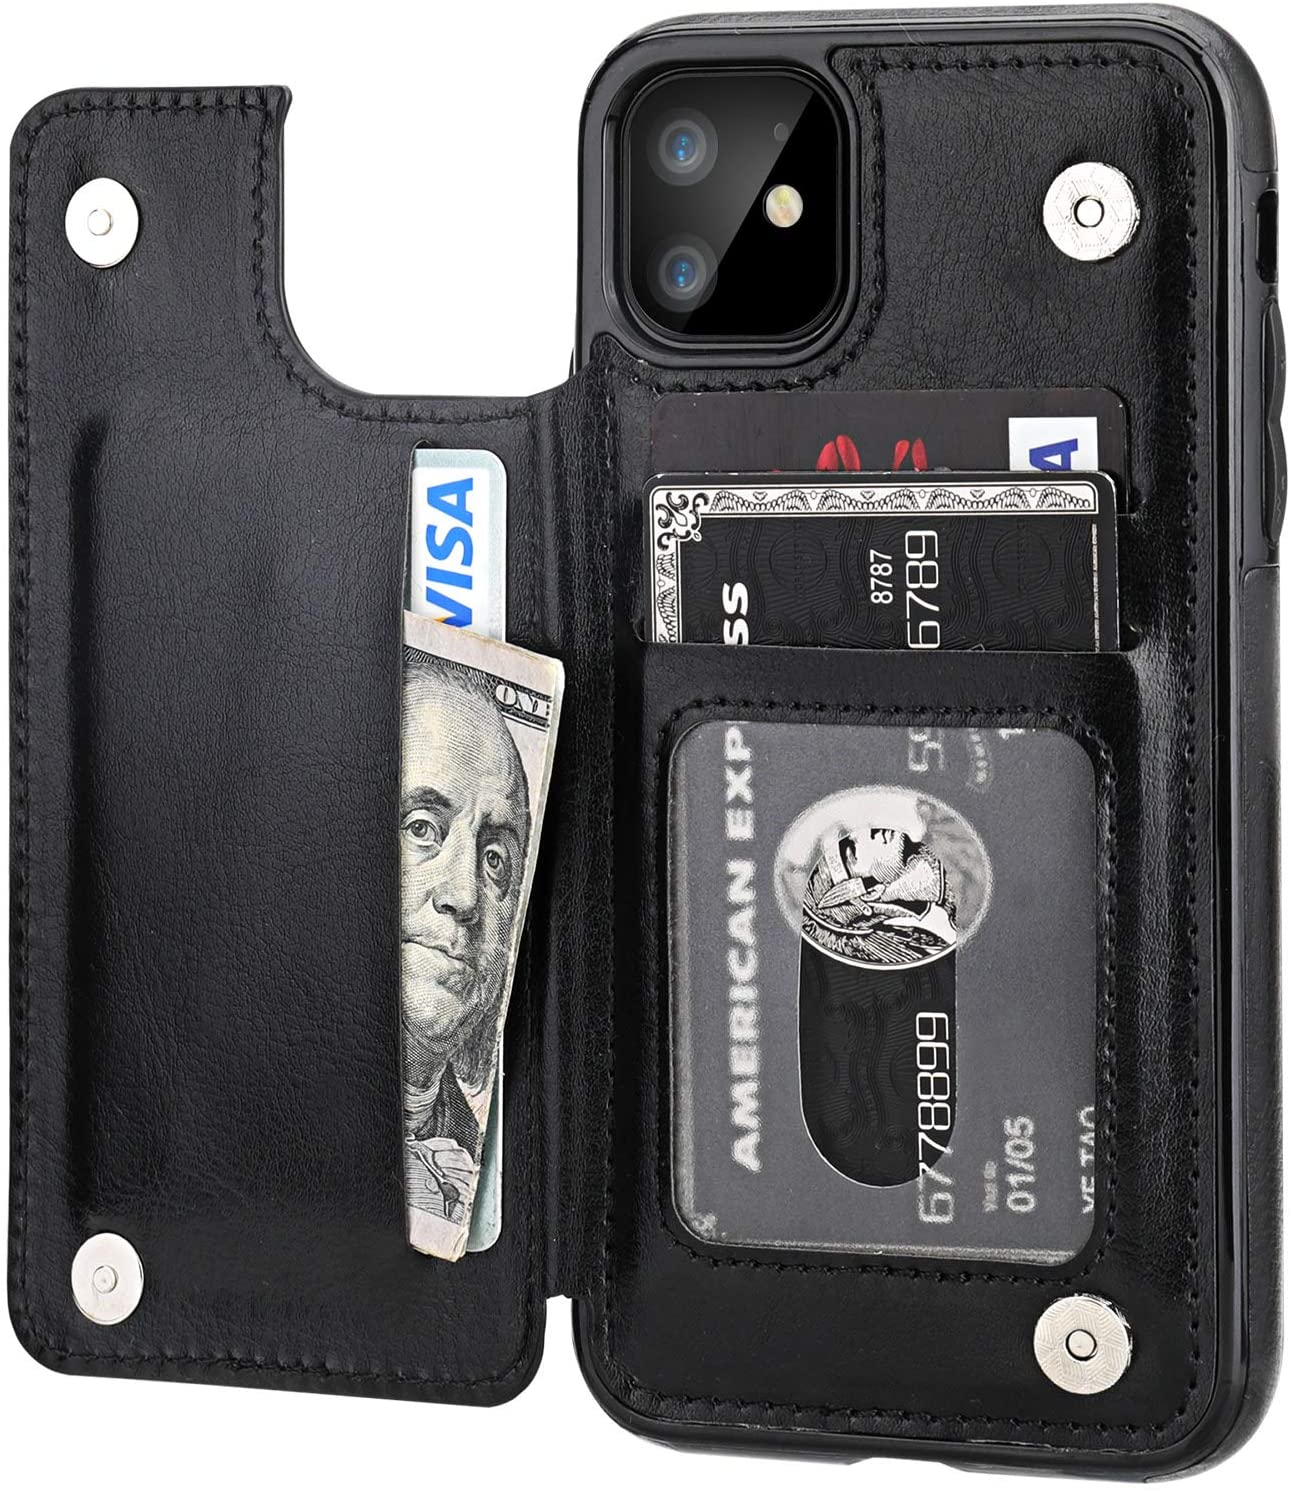 OT Onetop iPhone Wallet Case with Card Holder